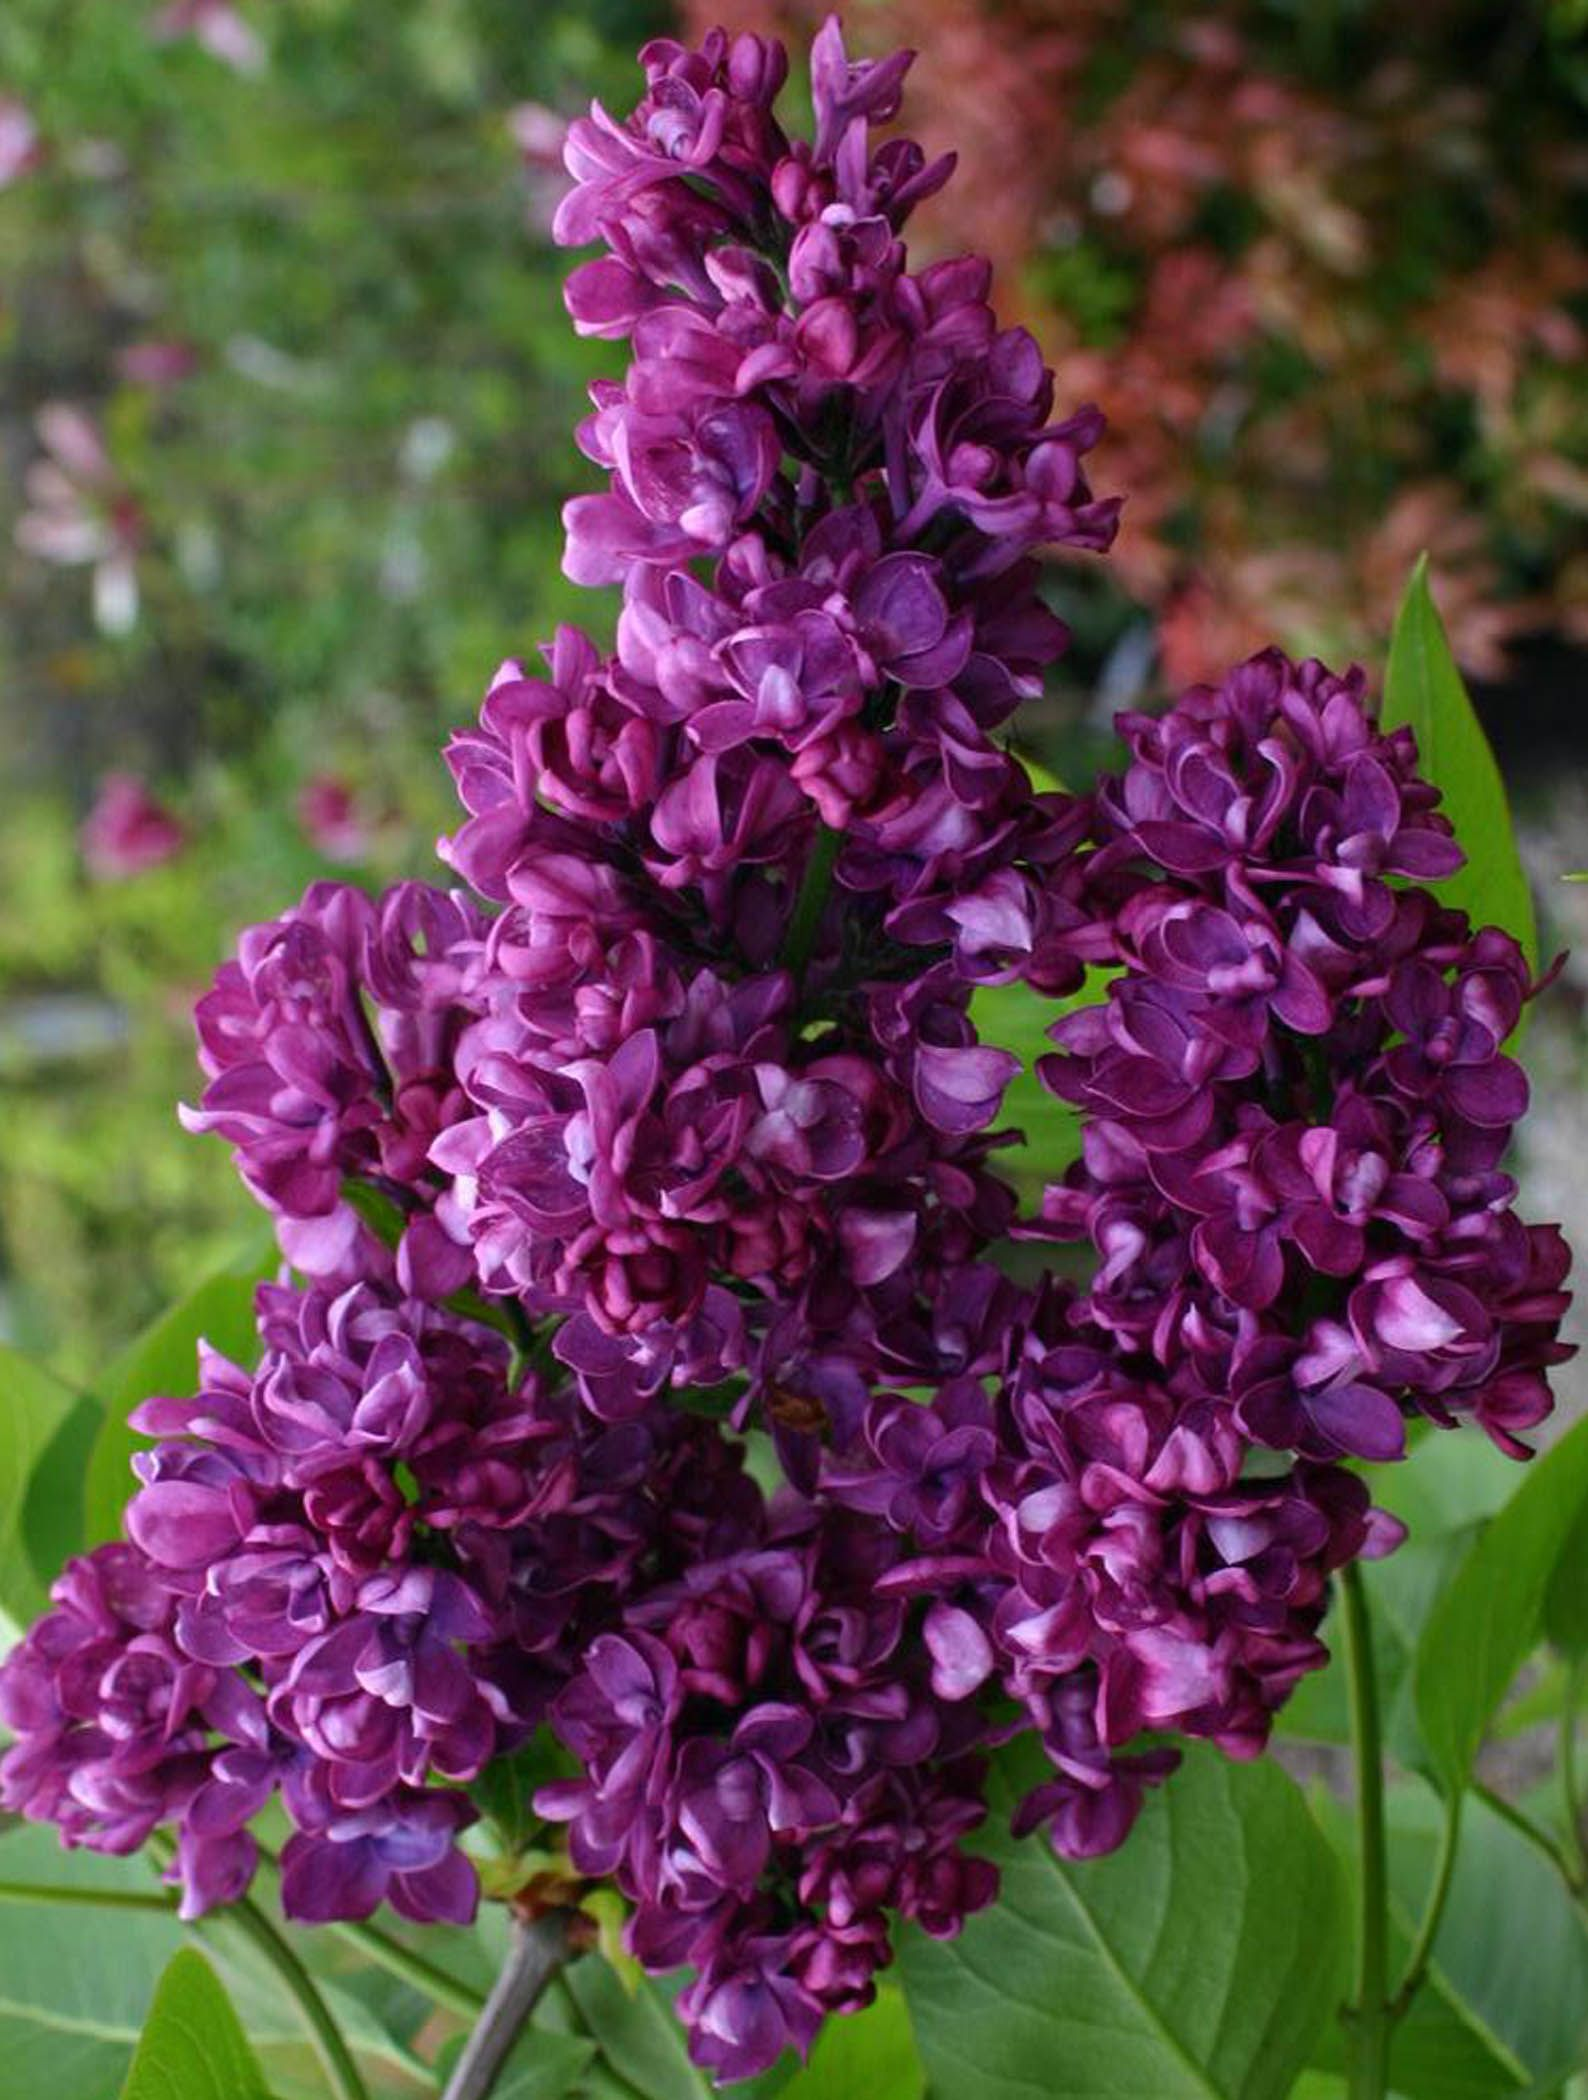 Burgundy Lilac Charles Joly Has Fragrant Wine Red Blooms That Stand Out Again Its Bright Green F Beautiful Flowers Garden Beautiful Flowers Colorful Flowers